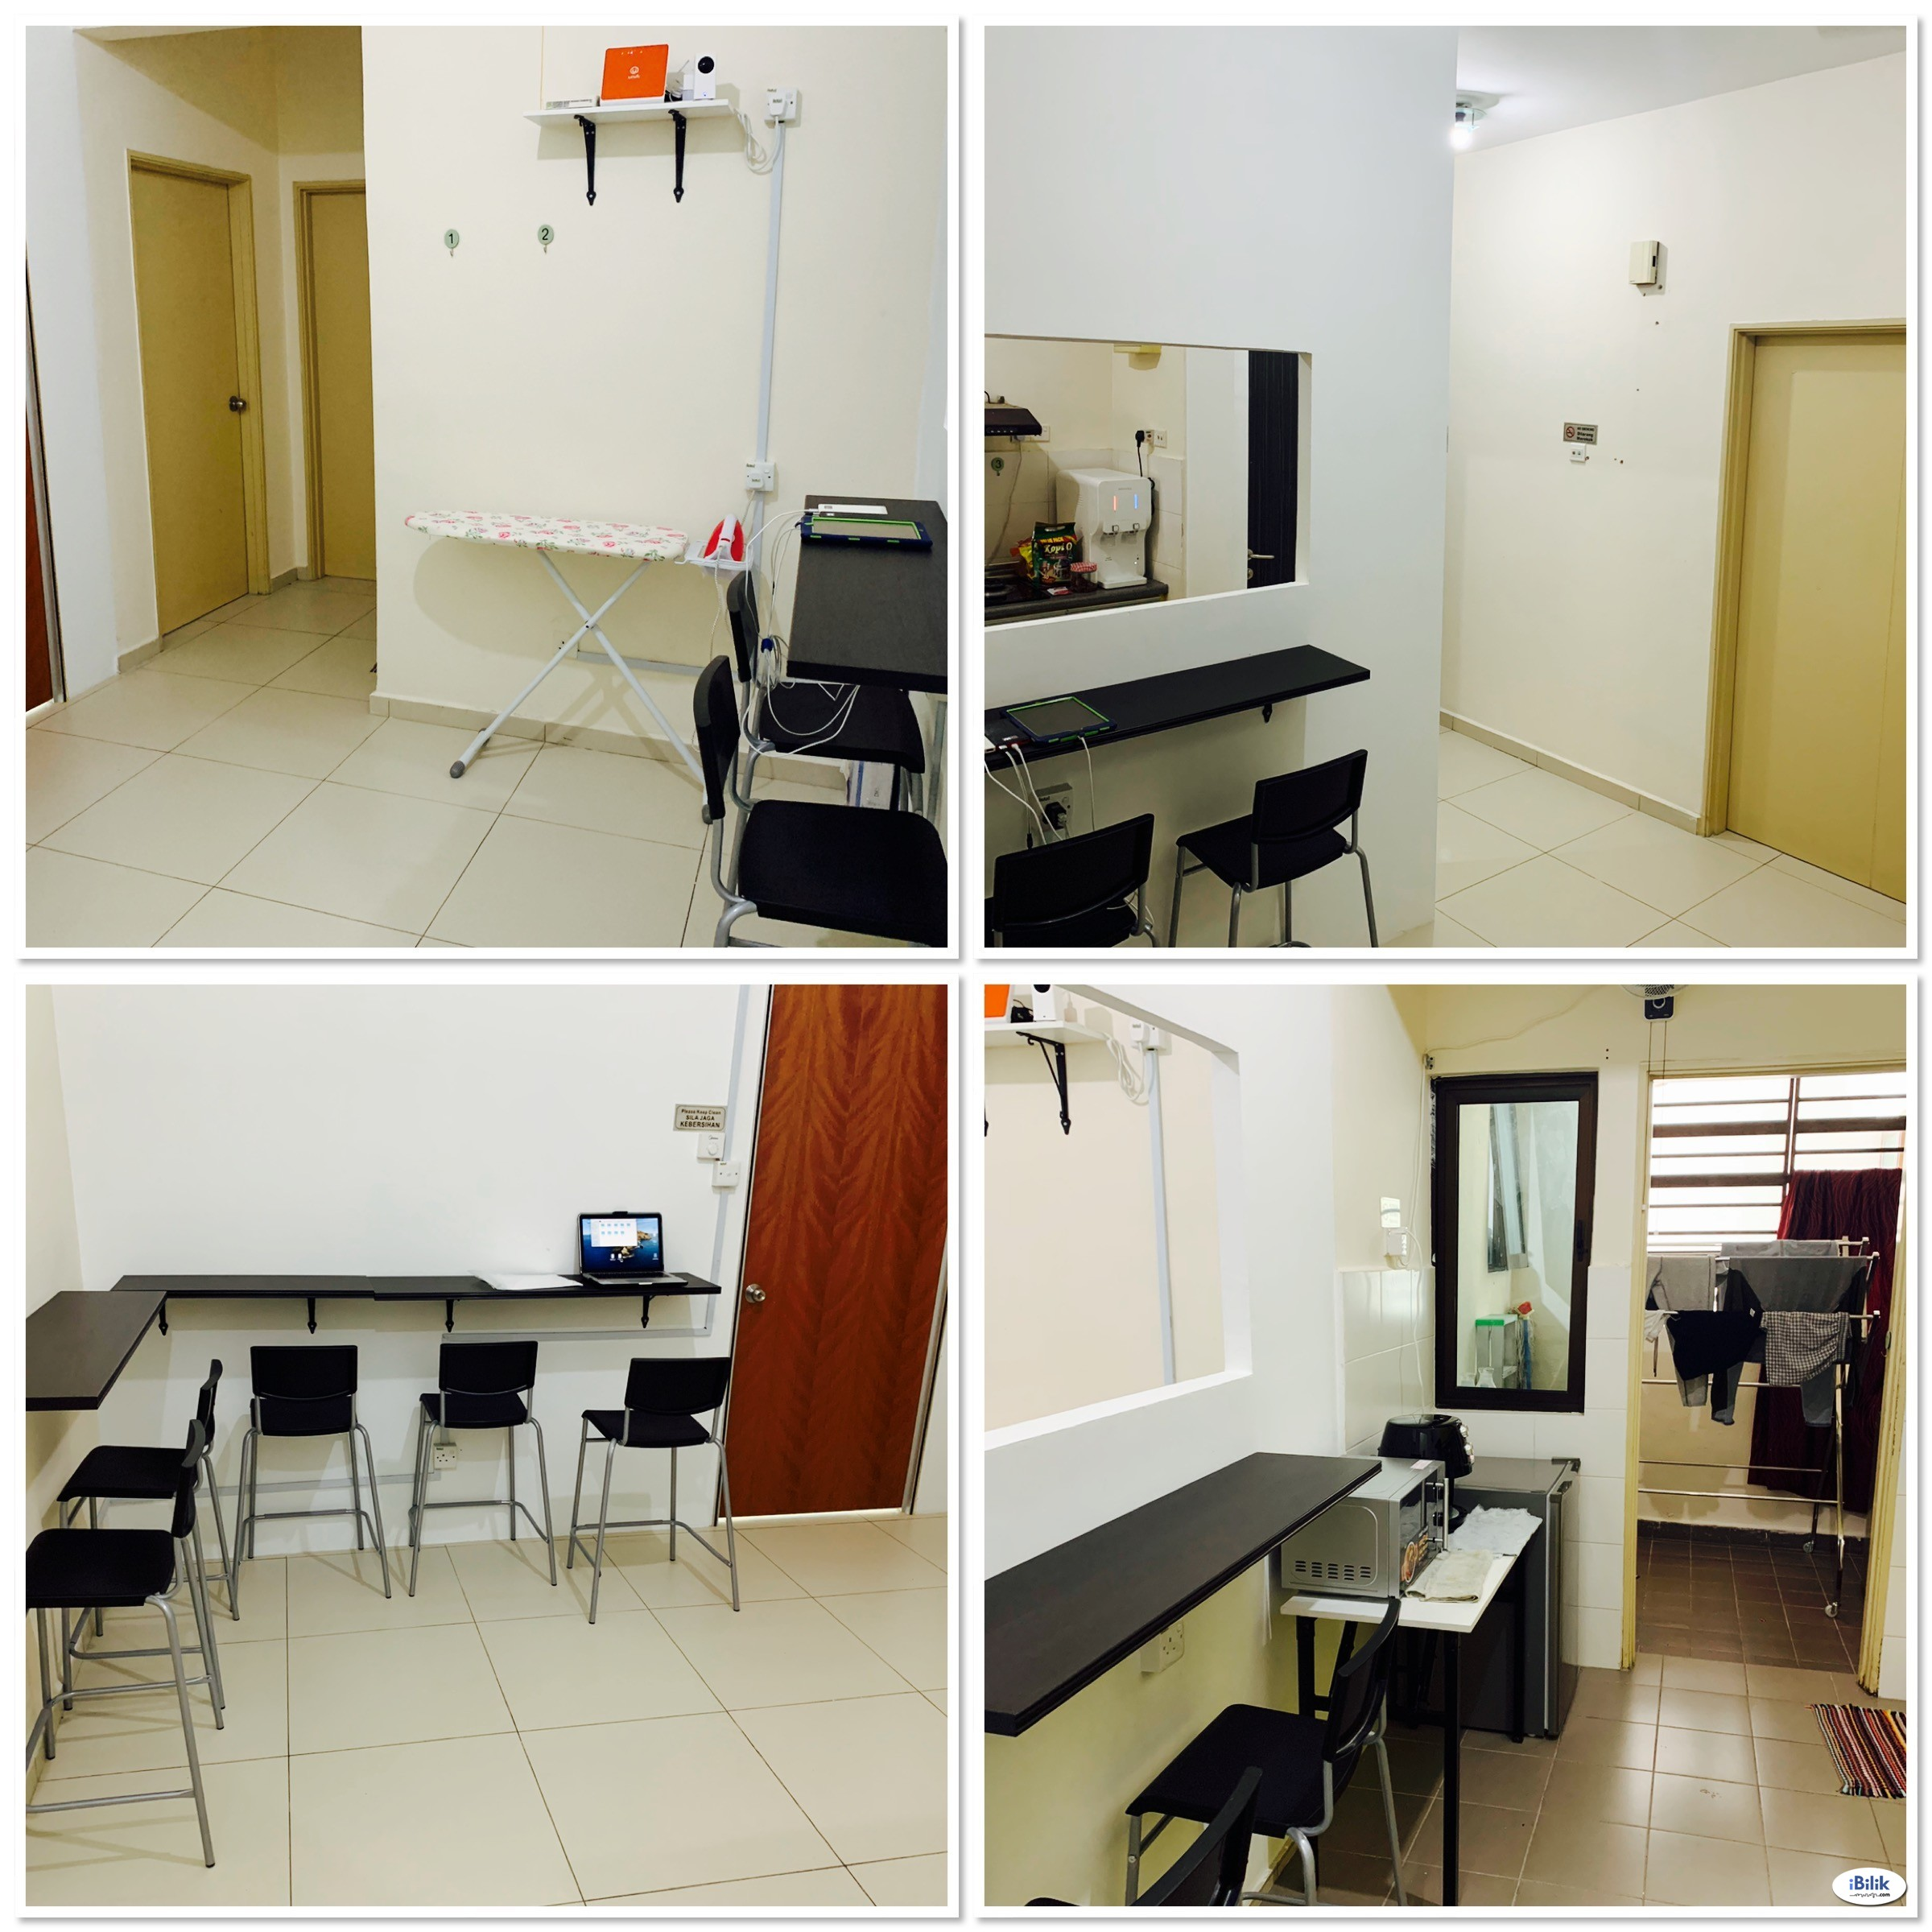 Middle Room at Serin Residency, Cyberjaya